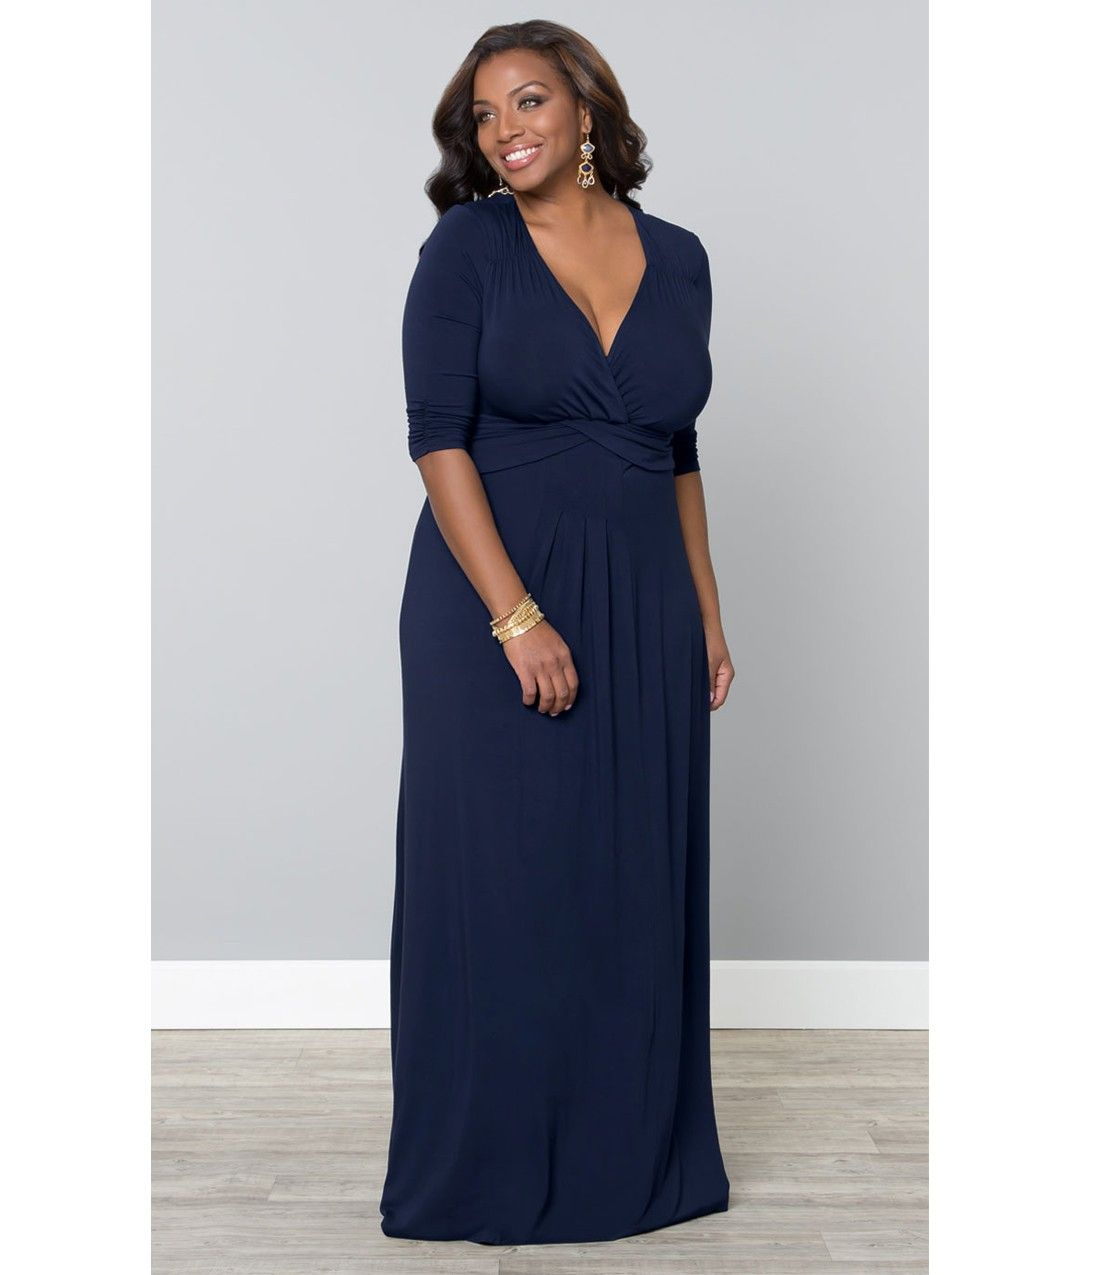 Outdoor Wedding Mother Of The Bride Dresses: Plus Size Navy Blue Desert Rain Maxi Dress